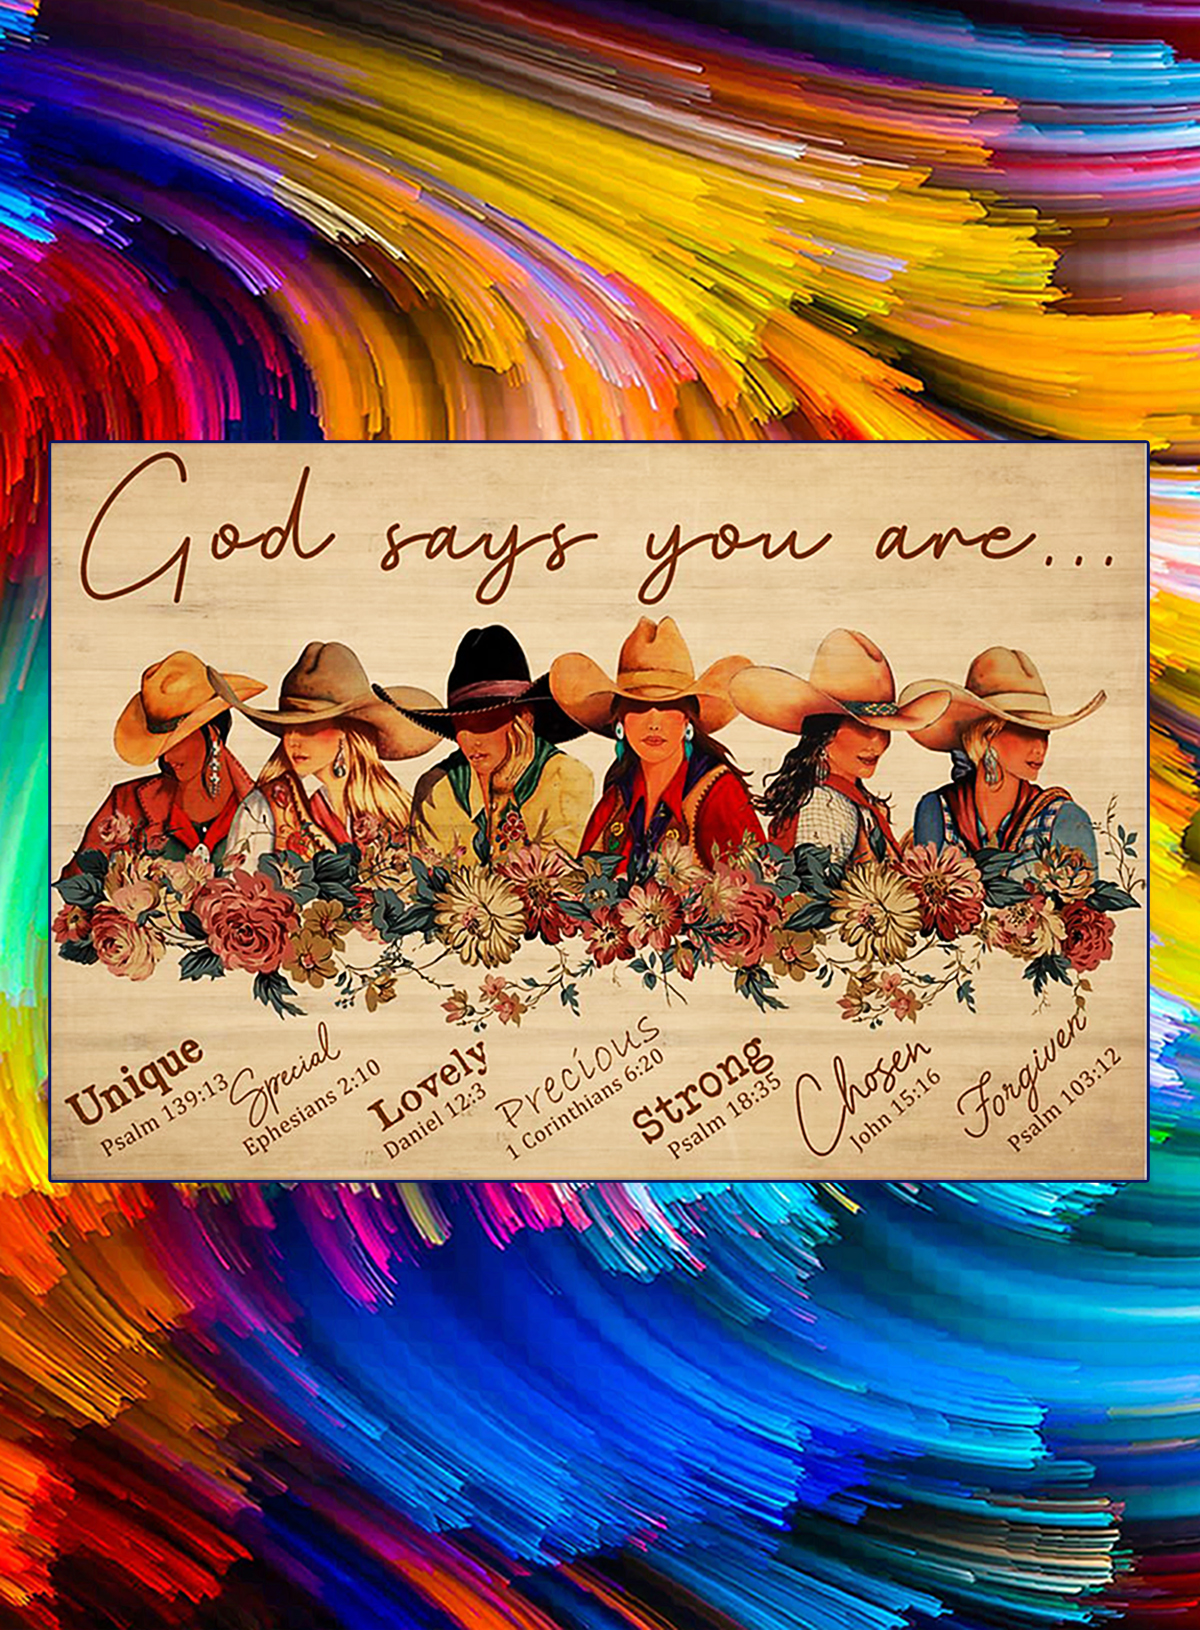 Cowgirl God says you are poster - A1